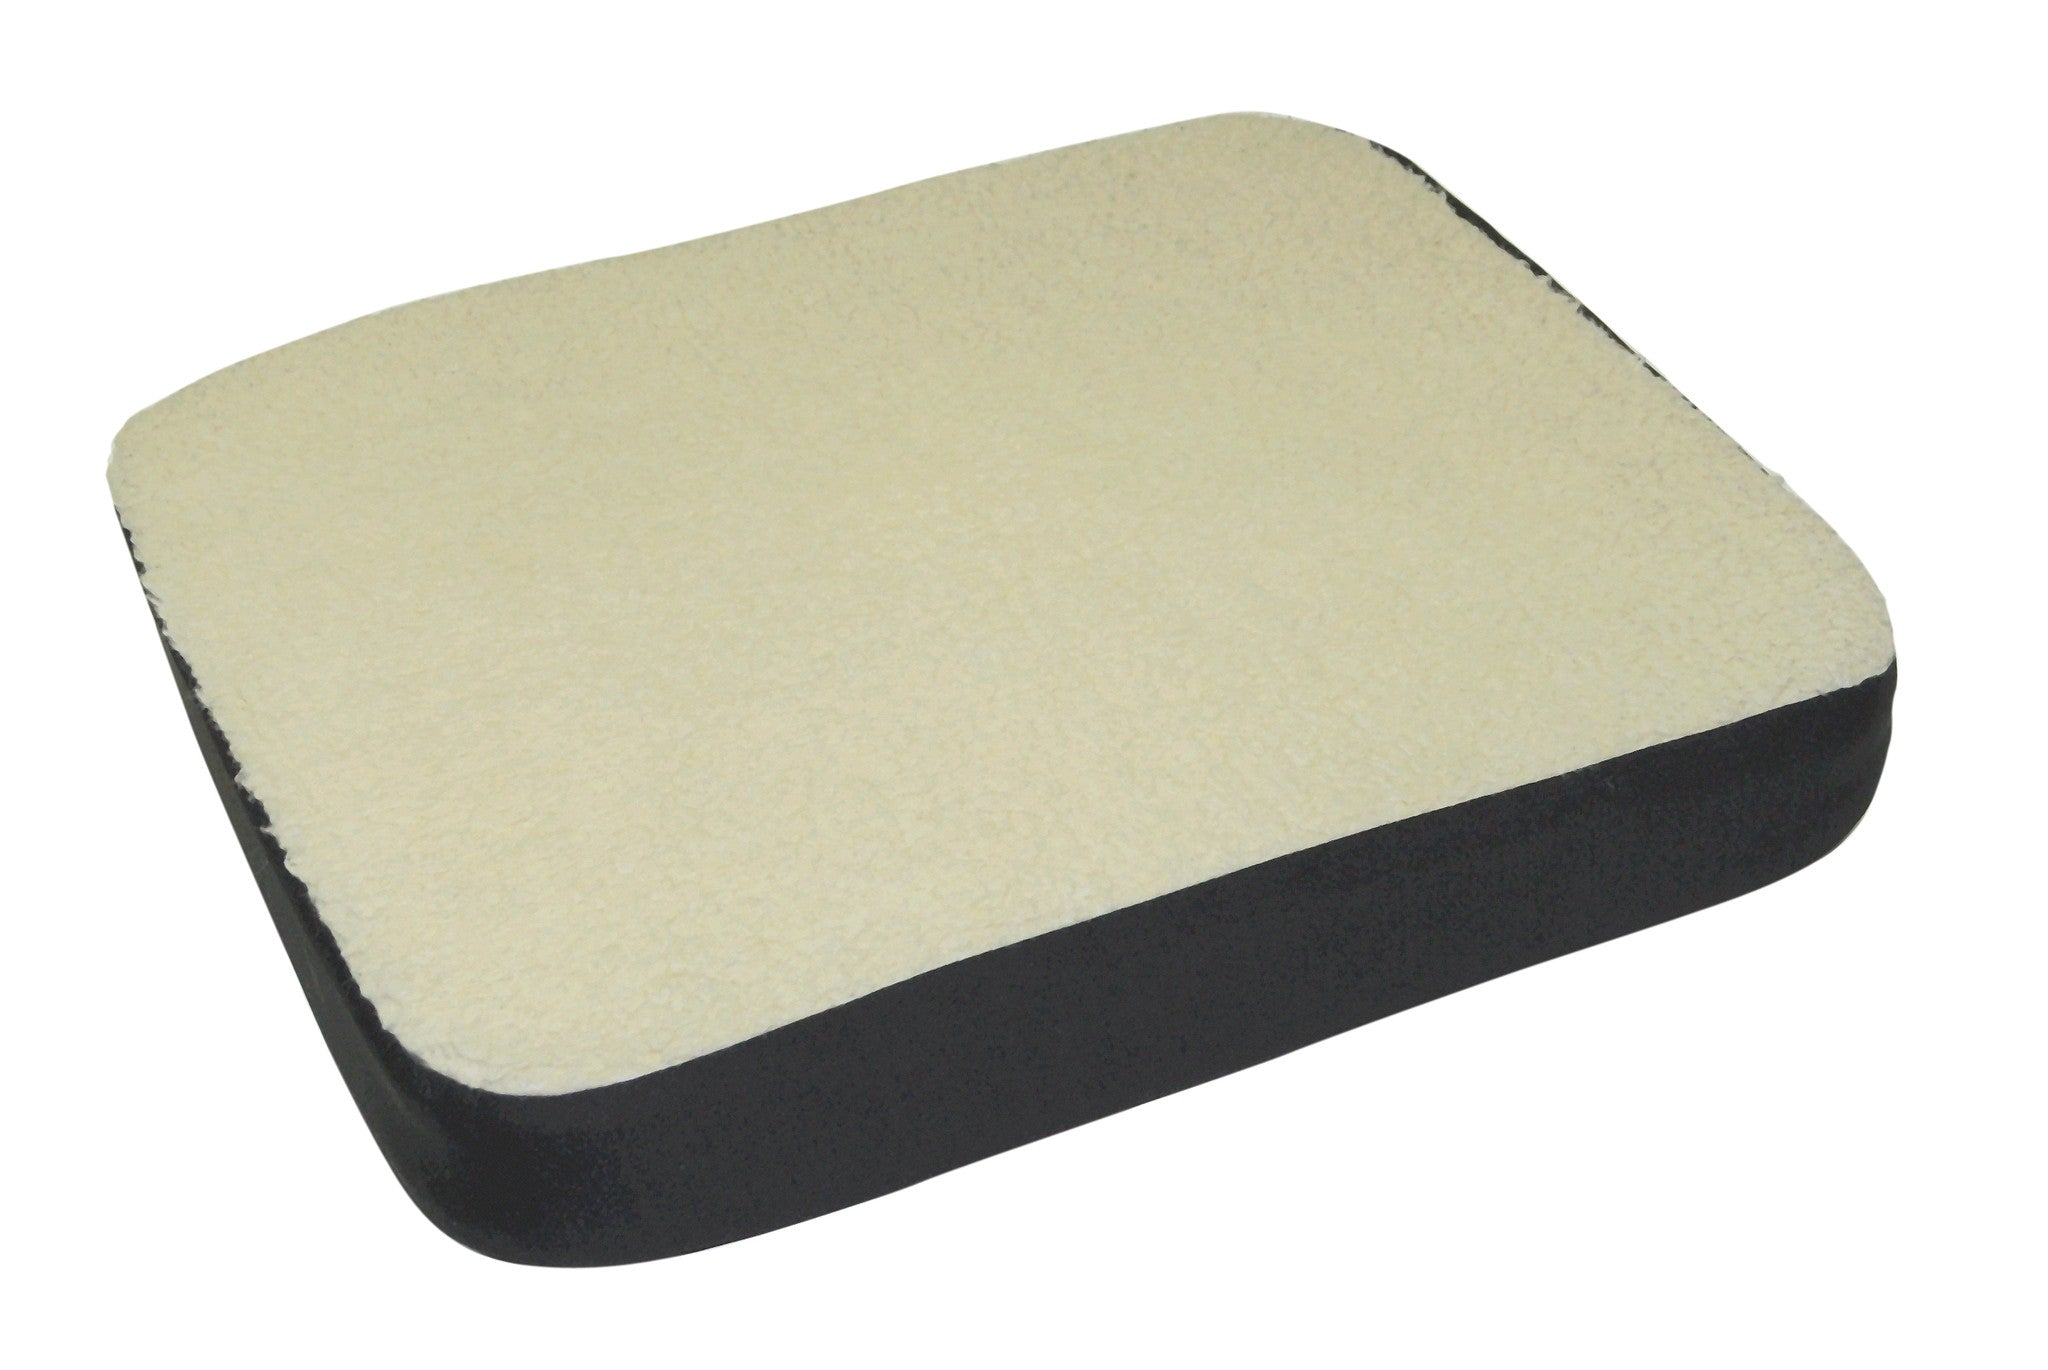 Aidapt Gel Comfort Cushion